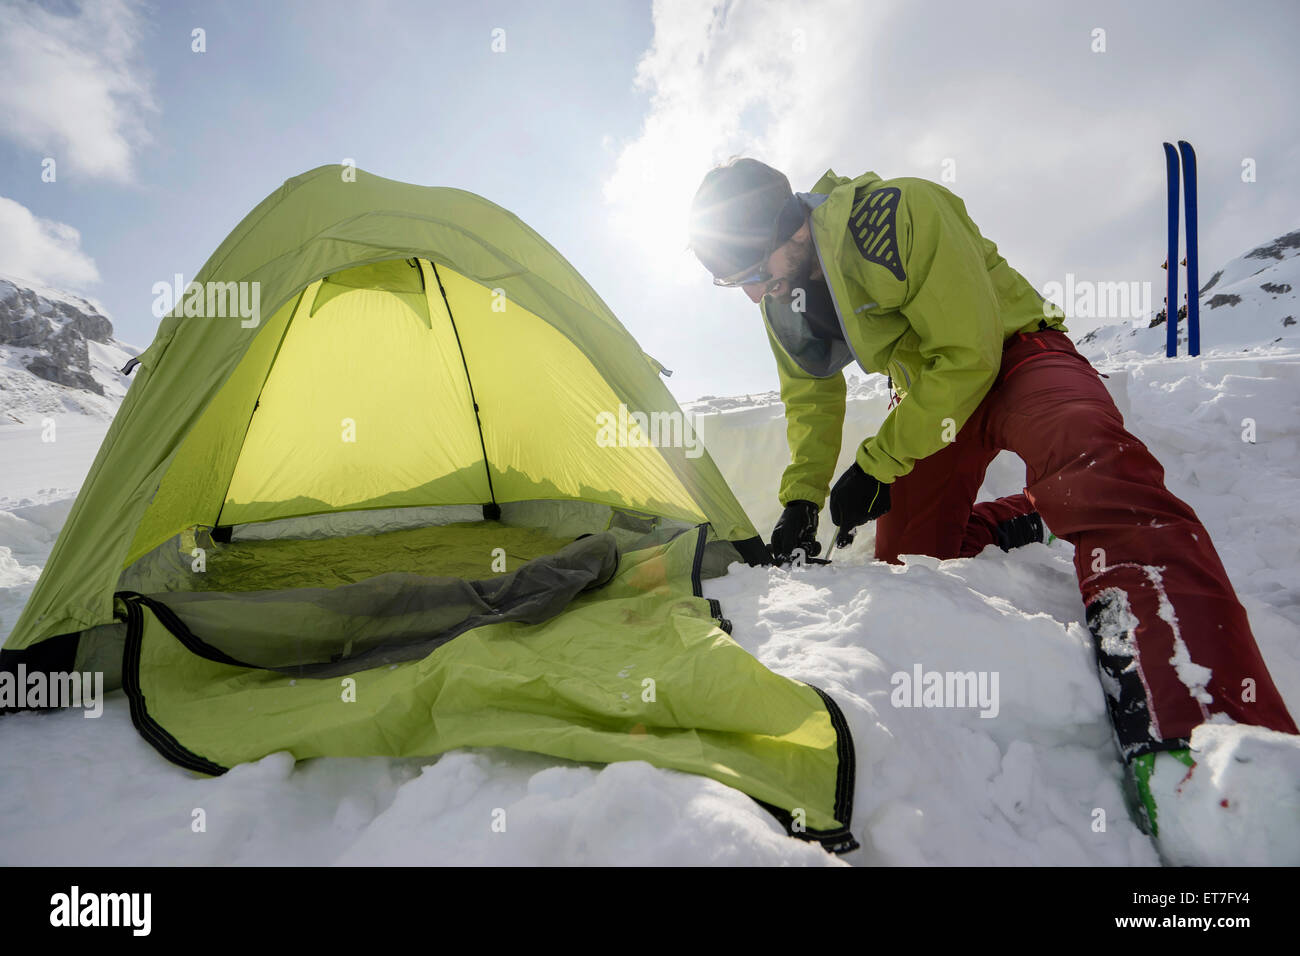 Man constructing tent in snow, Tyrol, Austria - Stock Image